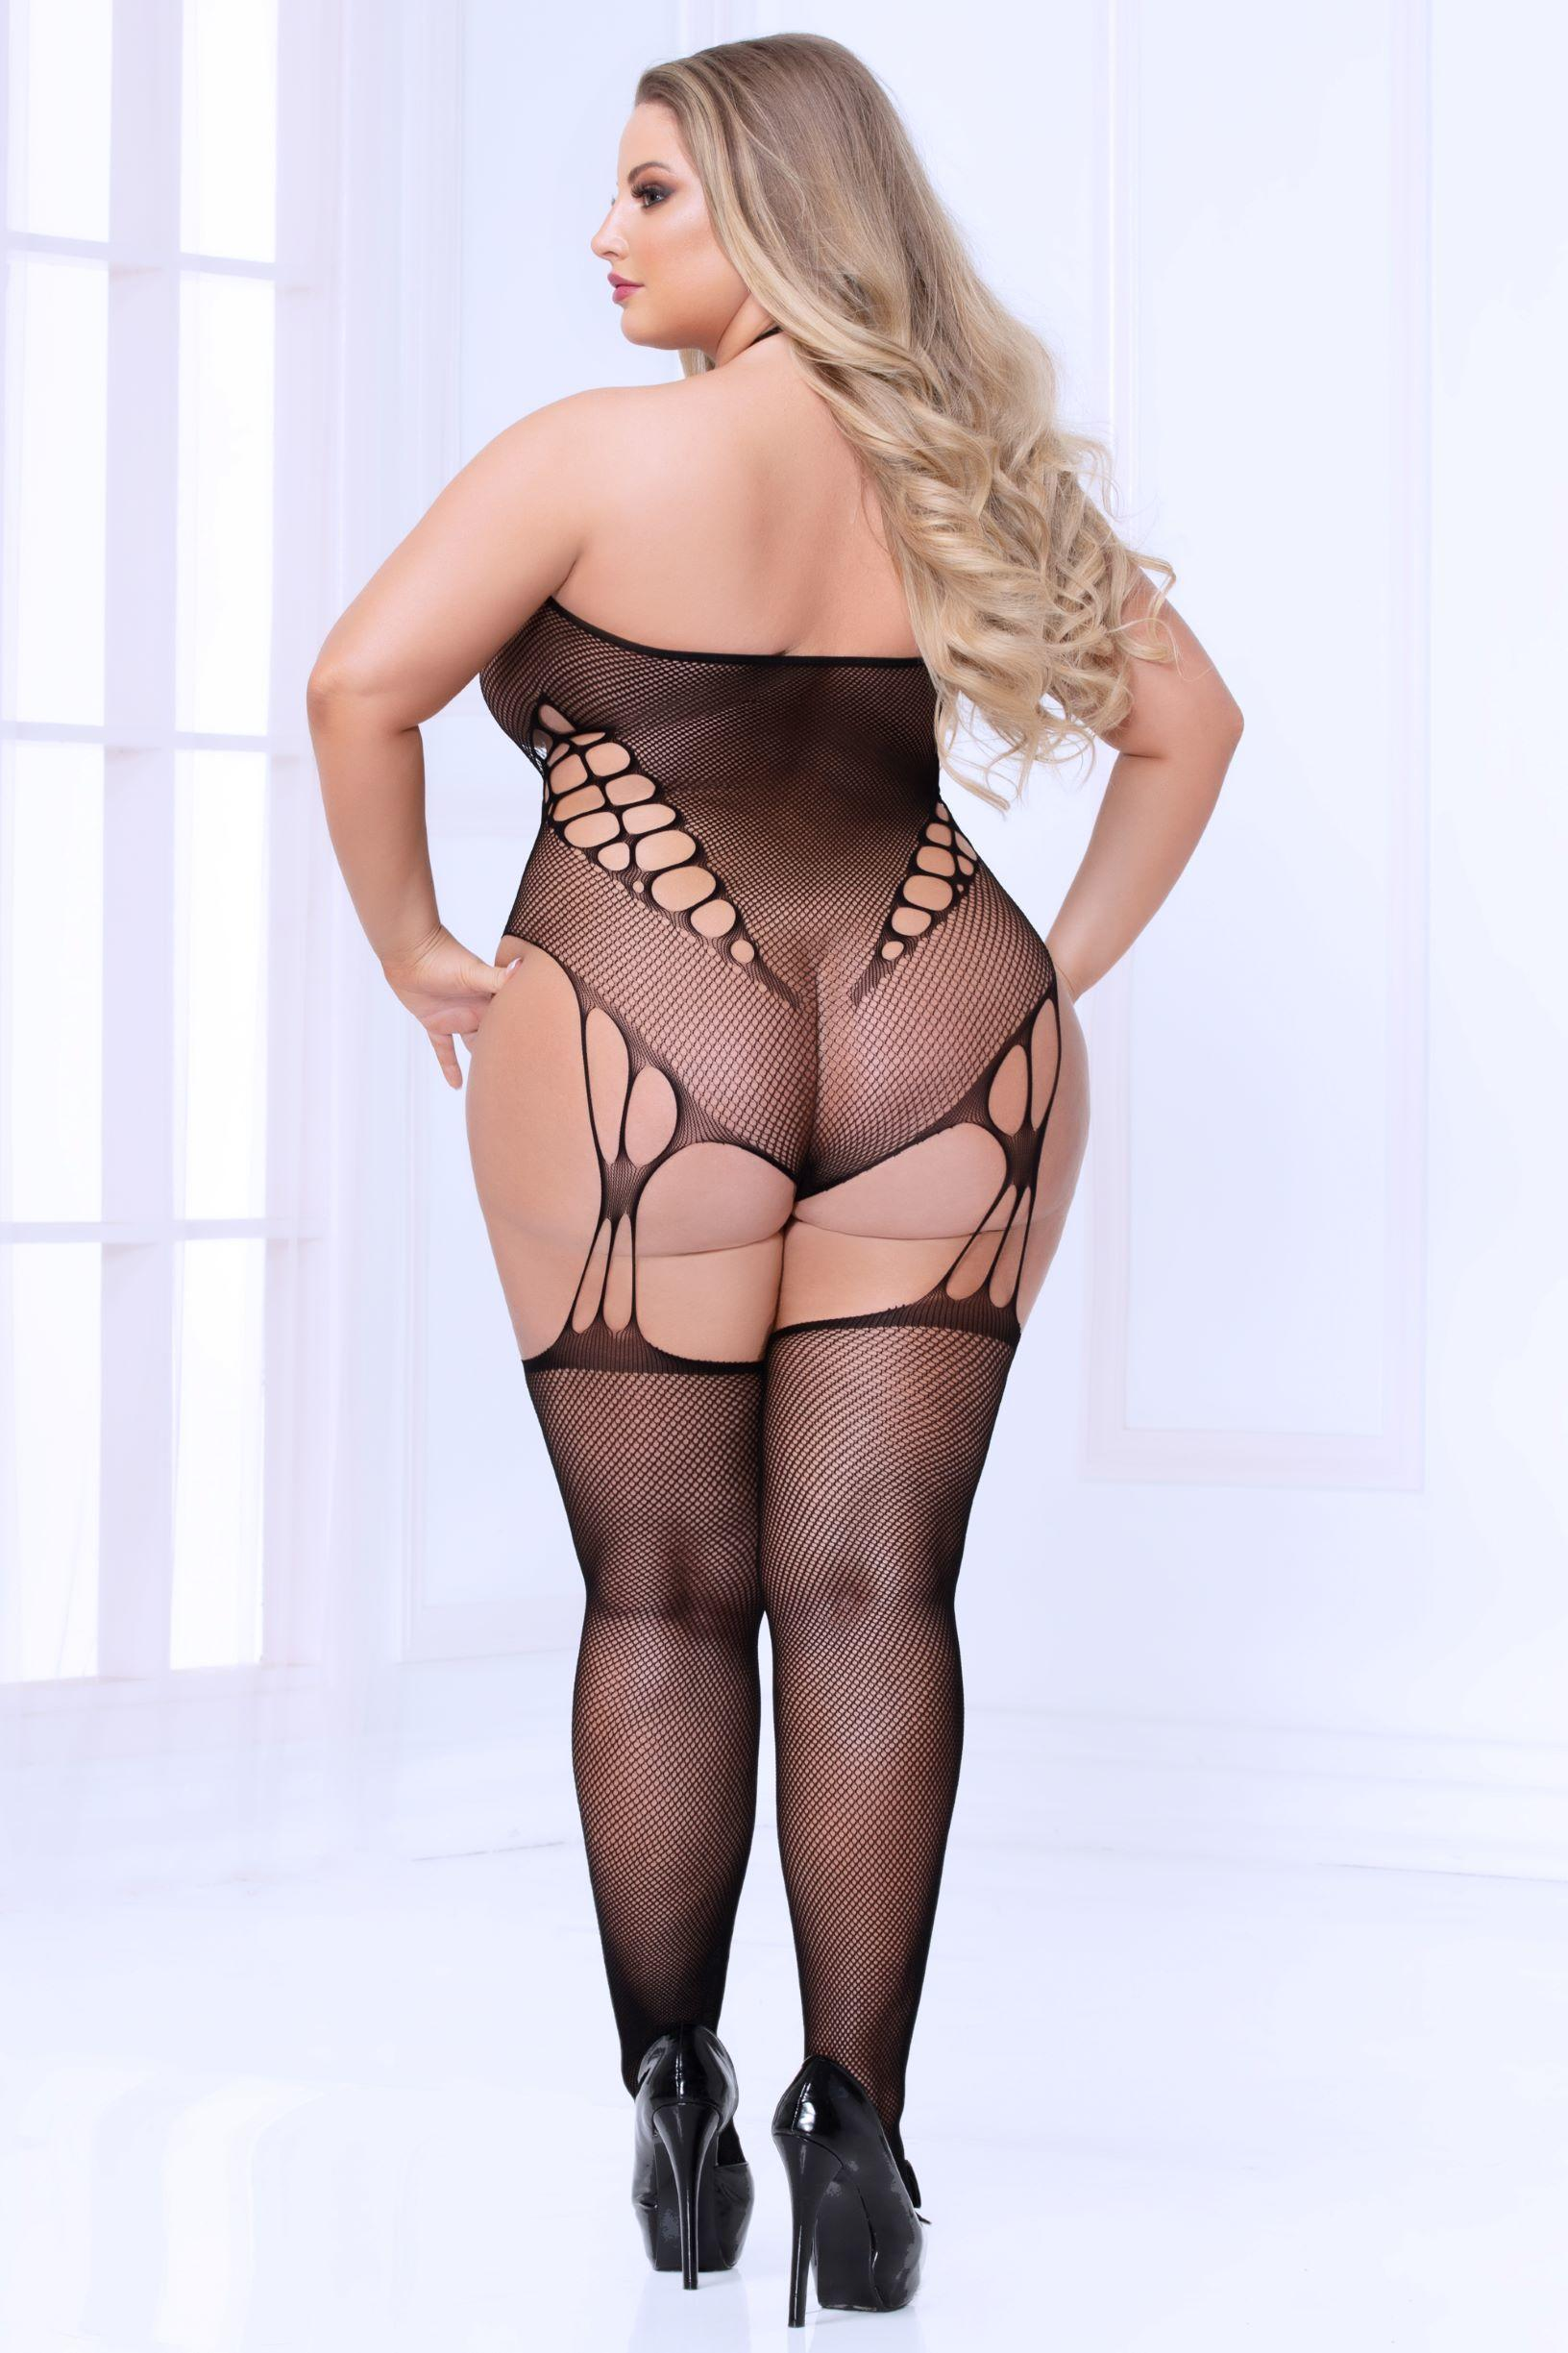 Halterneck Bodystocking rear view